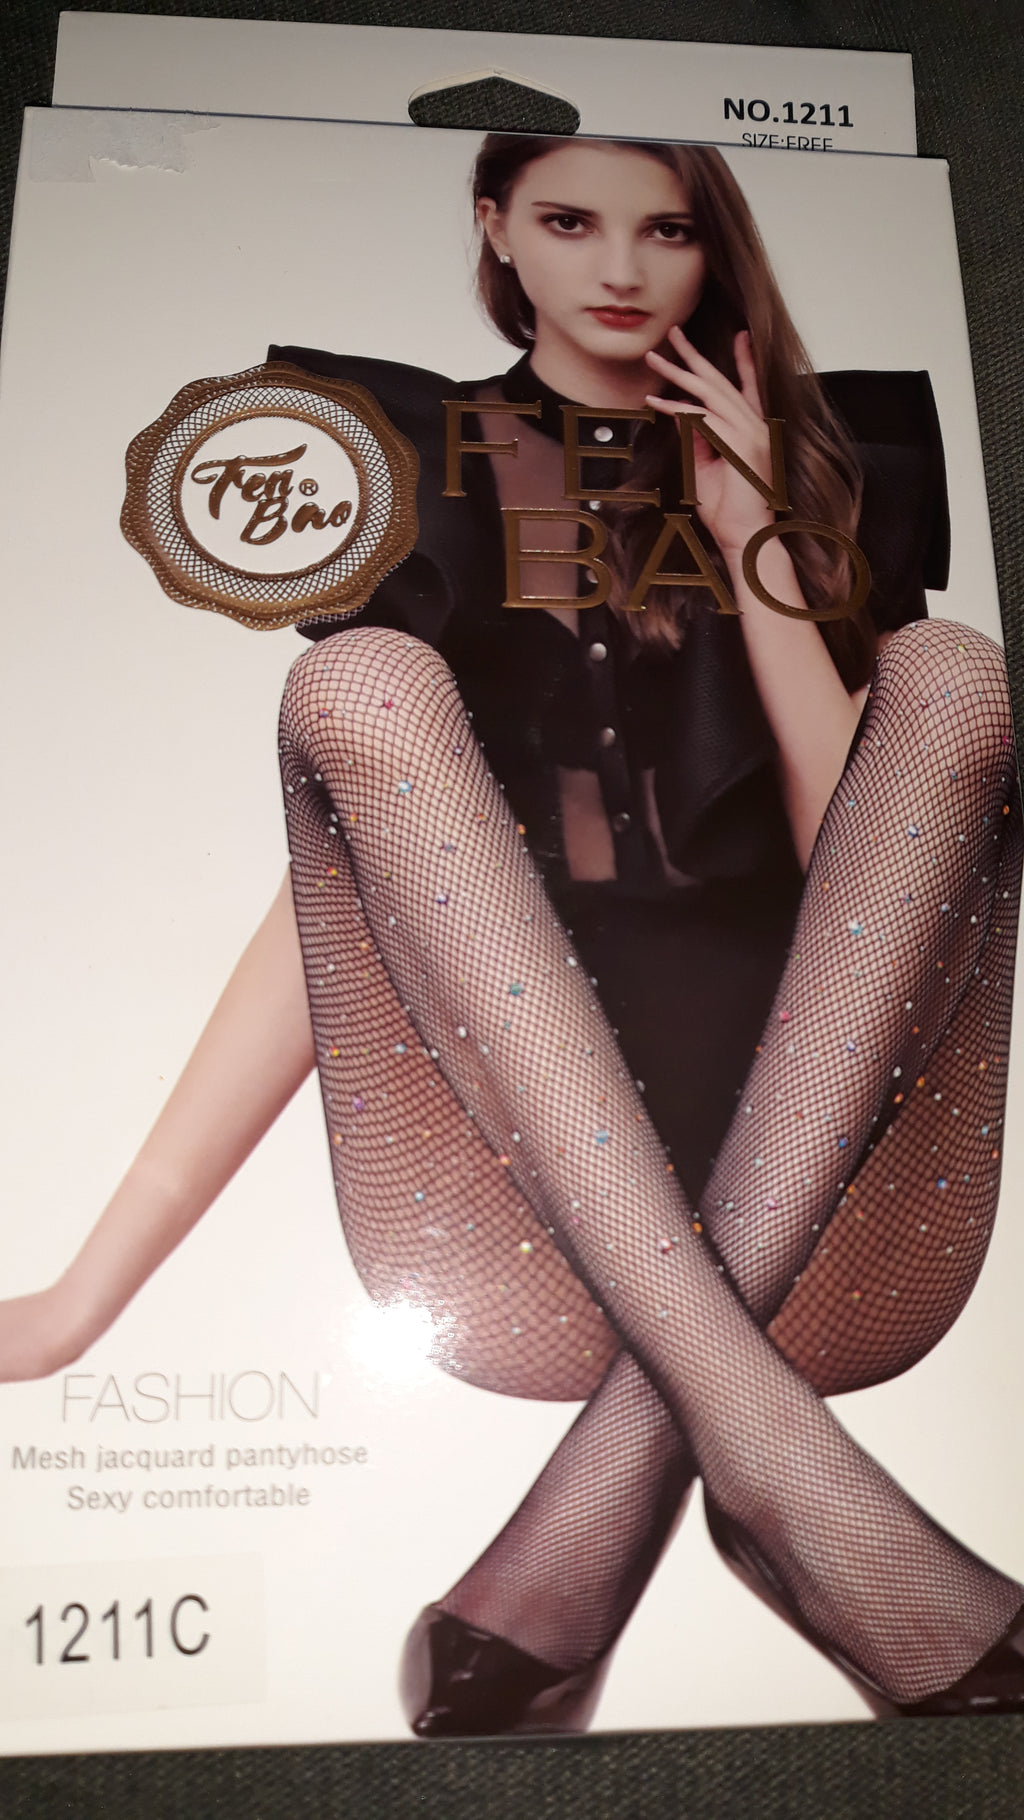 Fashion Rhinestone Pantyhose